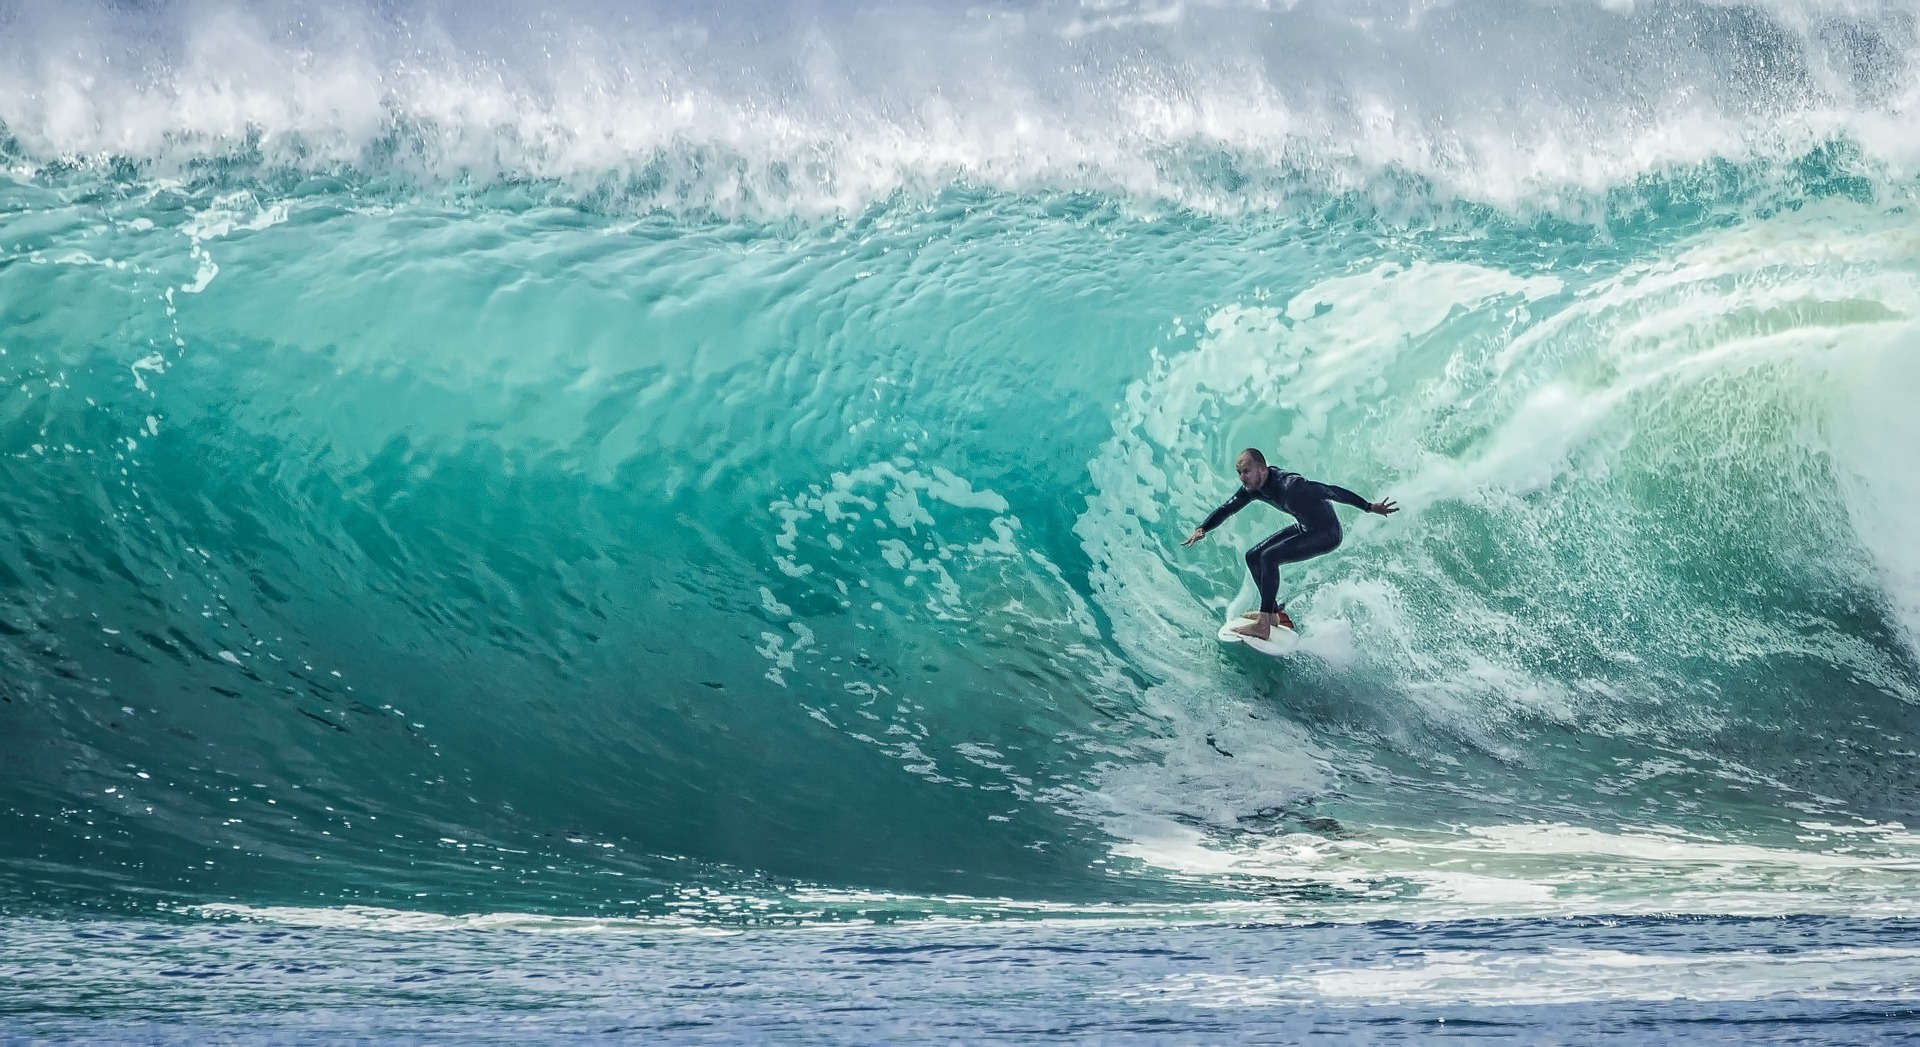 Get the most from your surfing